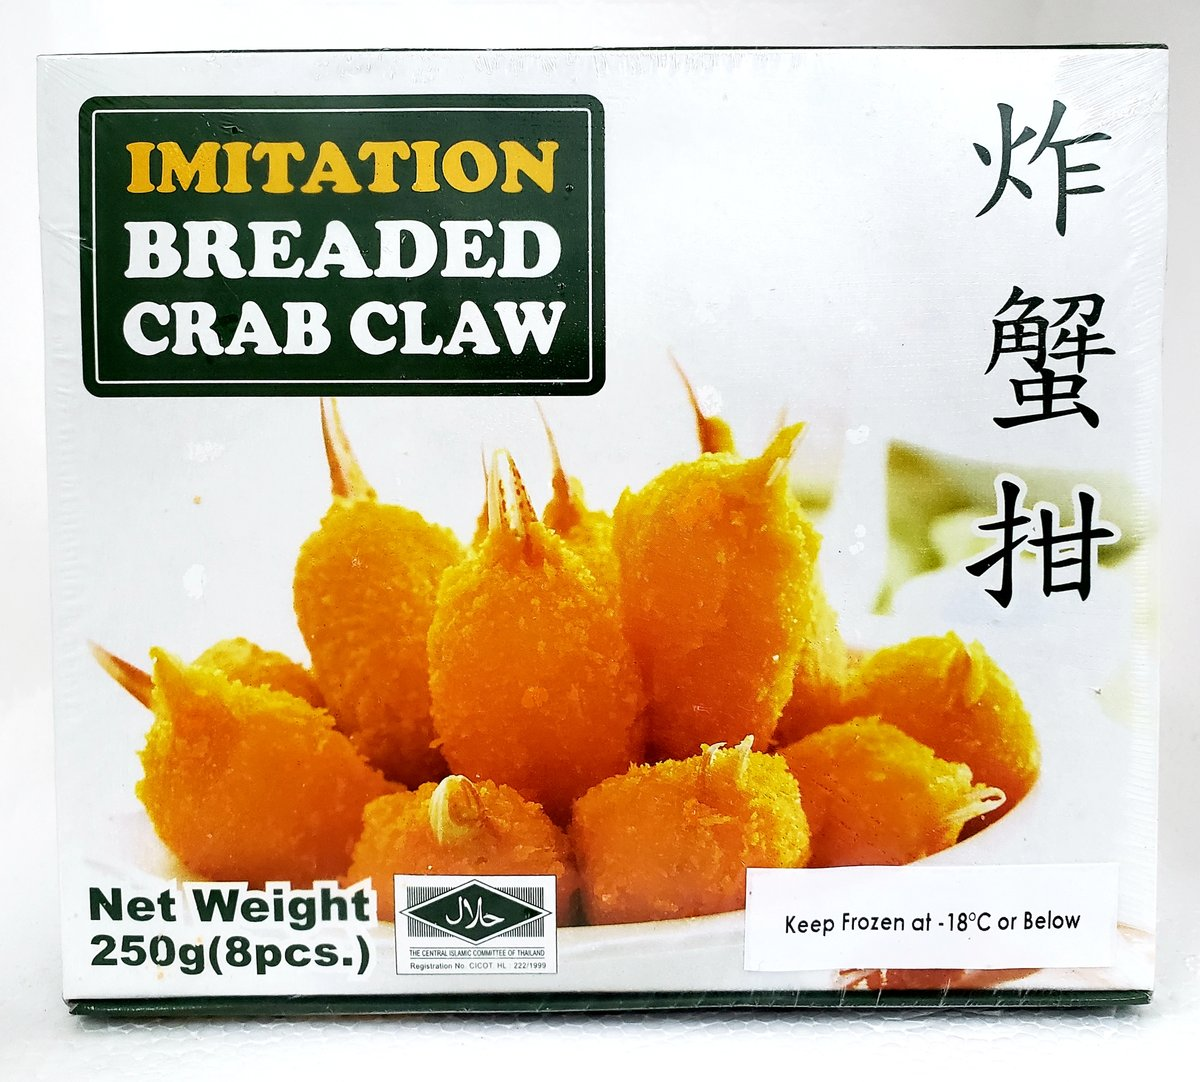 Fried Imitation Crab Claw (Frozen)